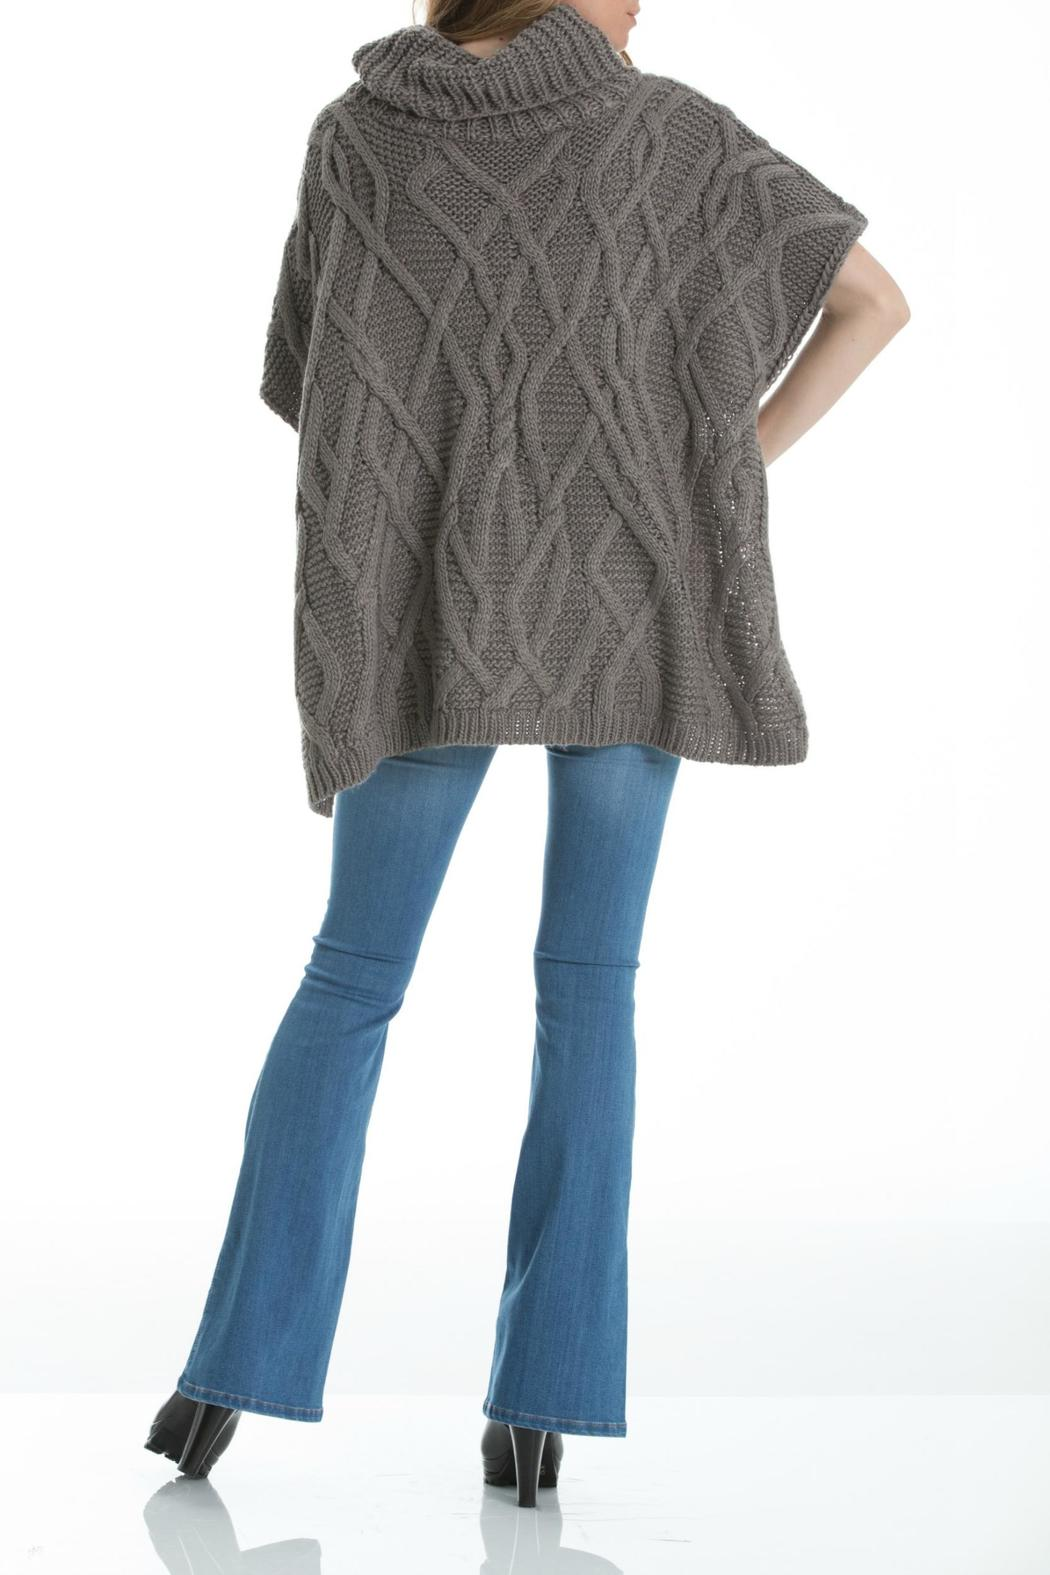 Elan Cableknit Cowl-Neck Poncho - Front Full Image